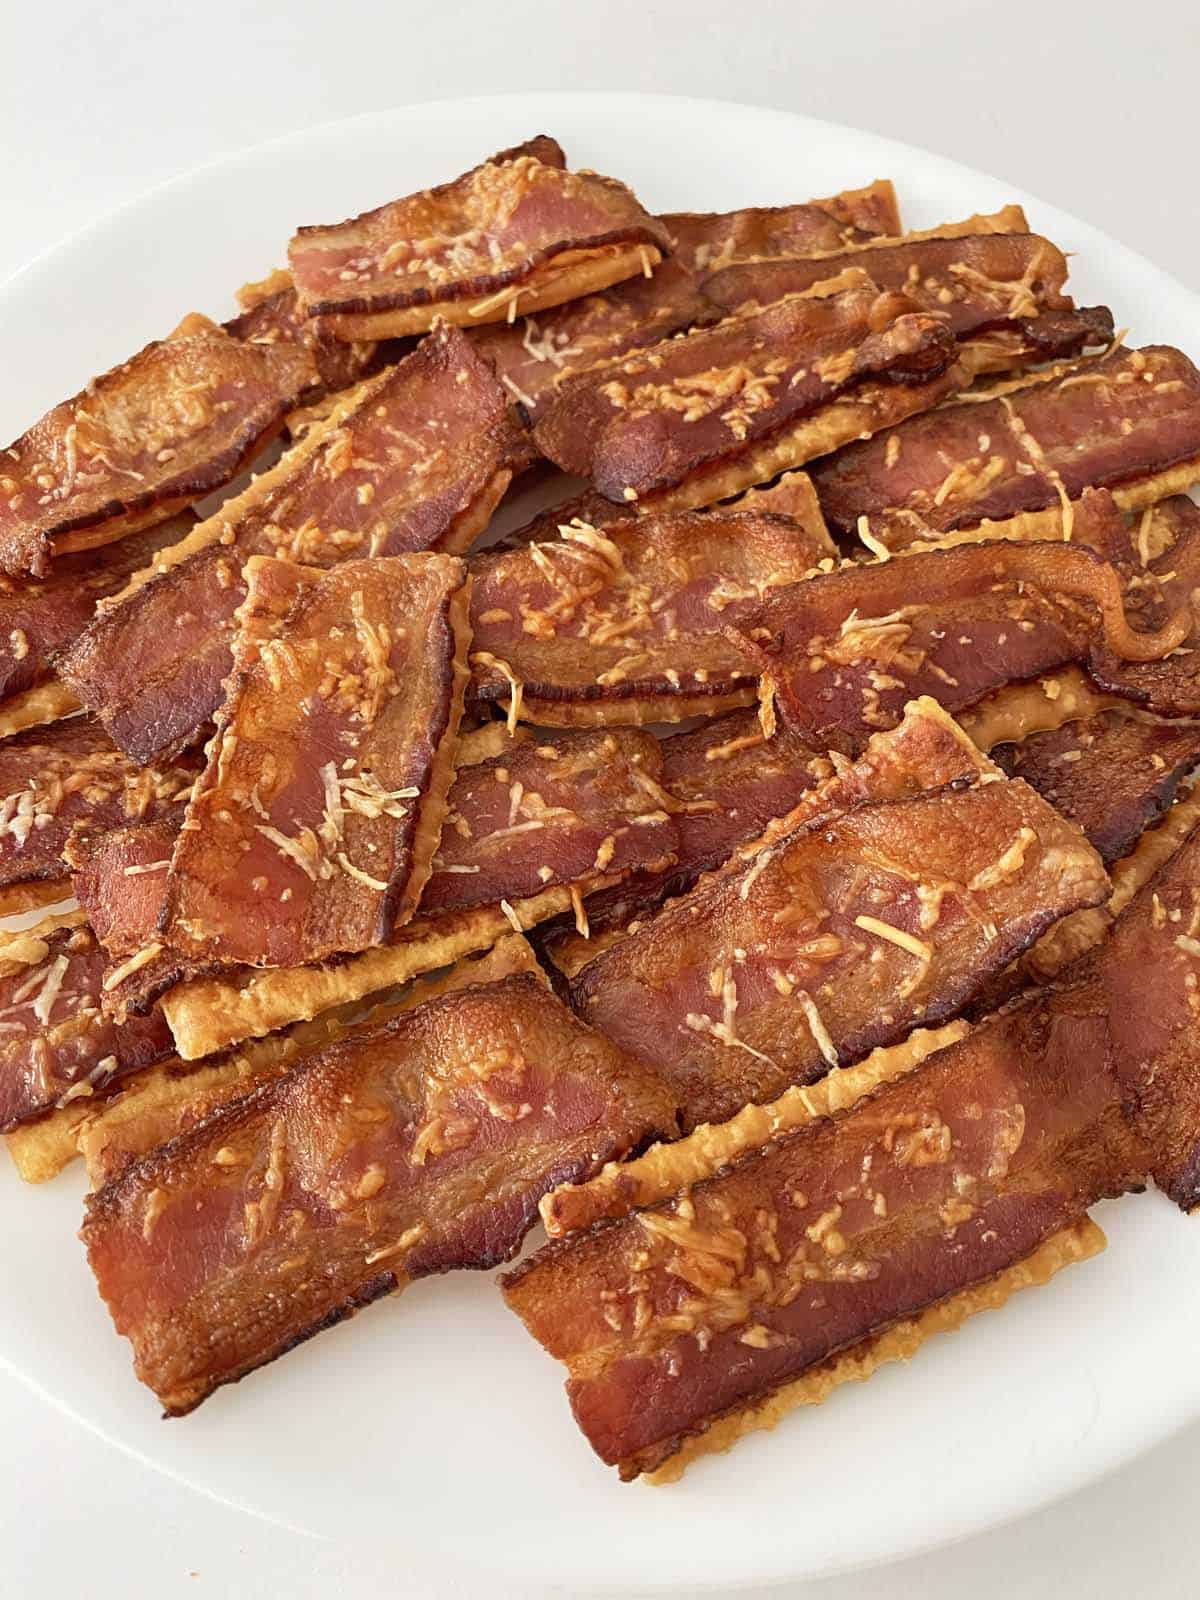 Bacon crackers baked with Parmesan cheese piled on a white plate.